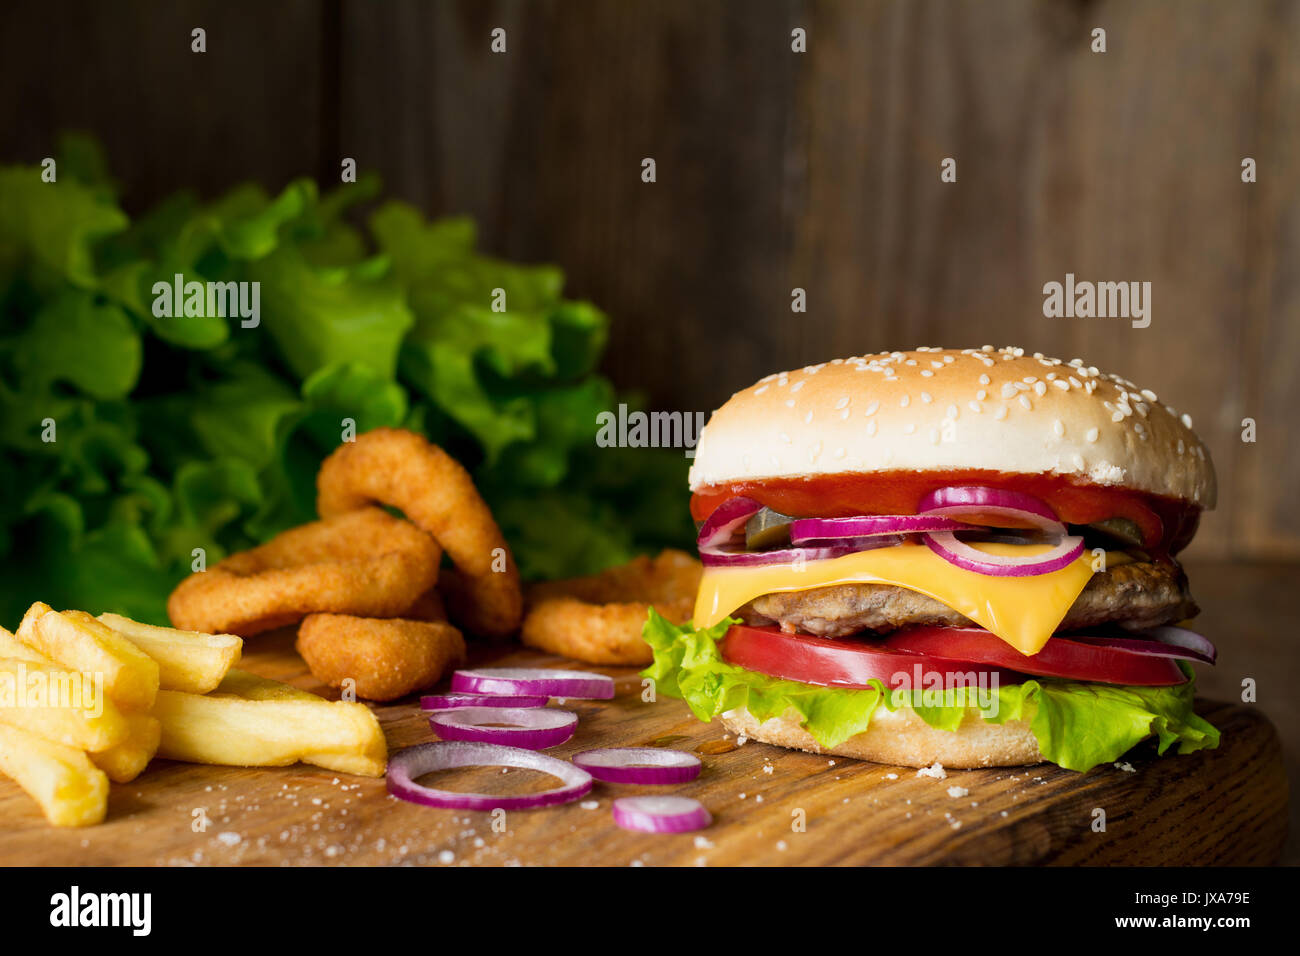 Cheeseburger, french fries and onion rings on wooden cutting board over wooden background. Closeup view, selective focus. Fast food concept - Stock Image